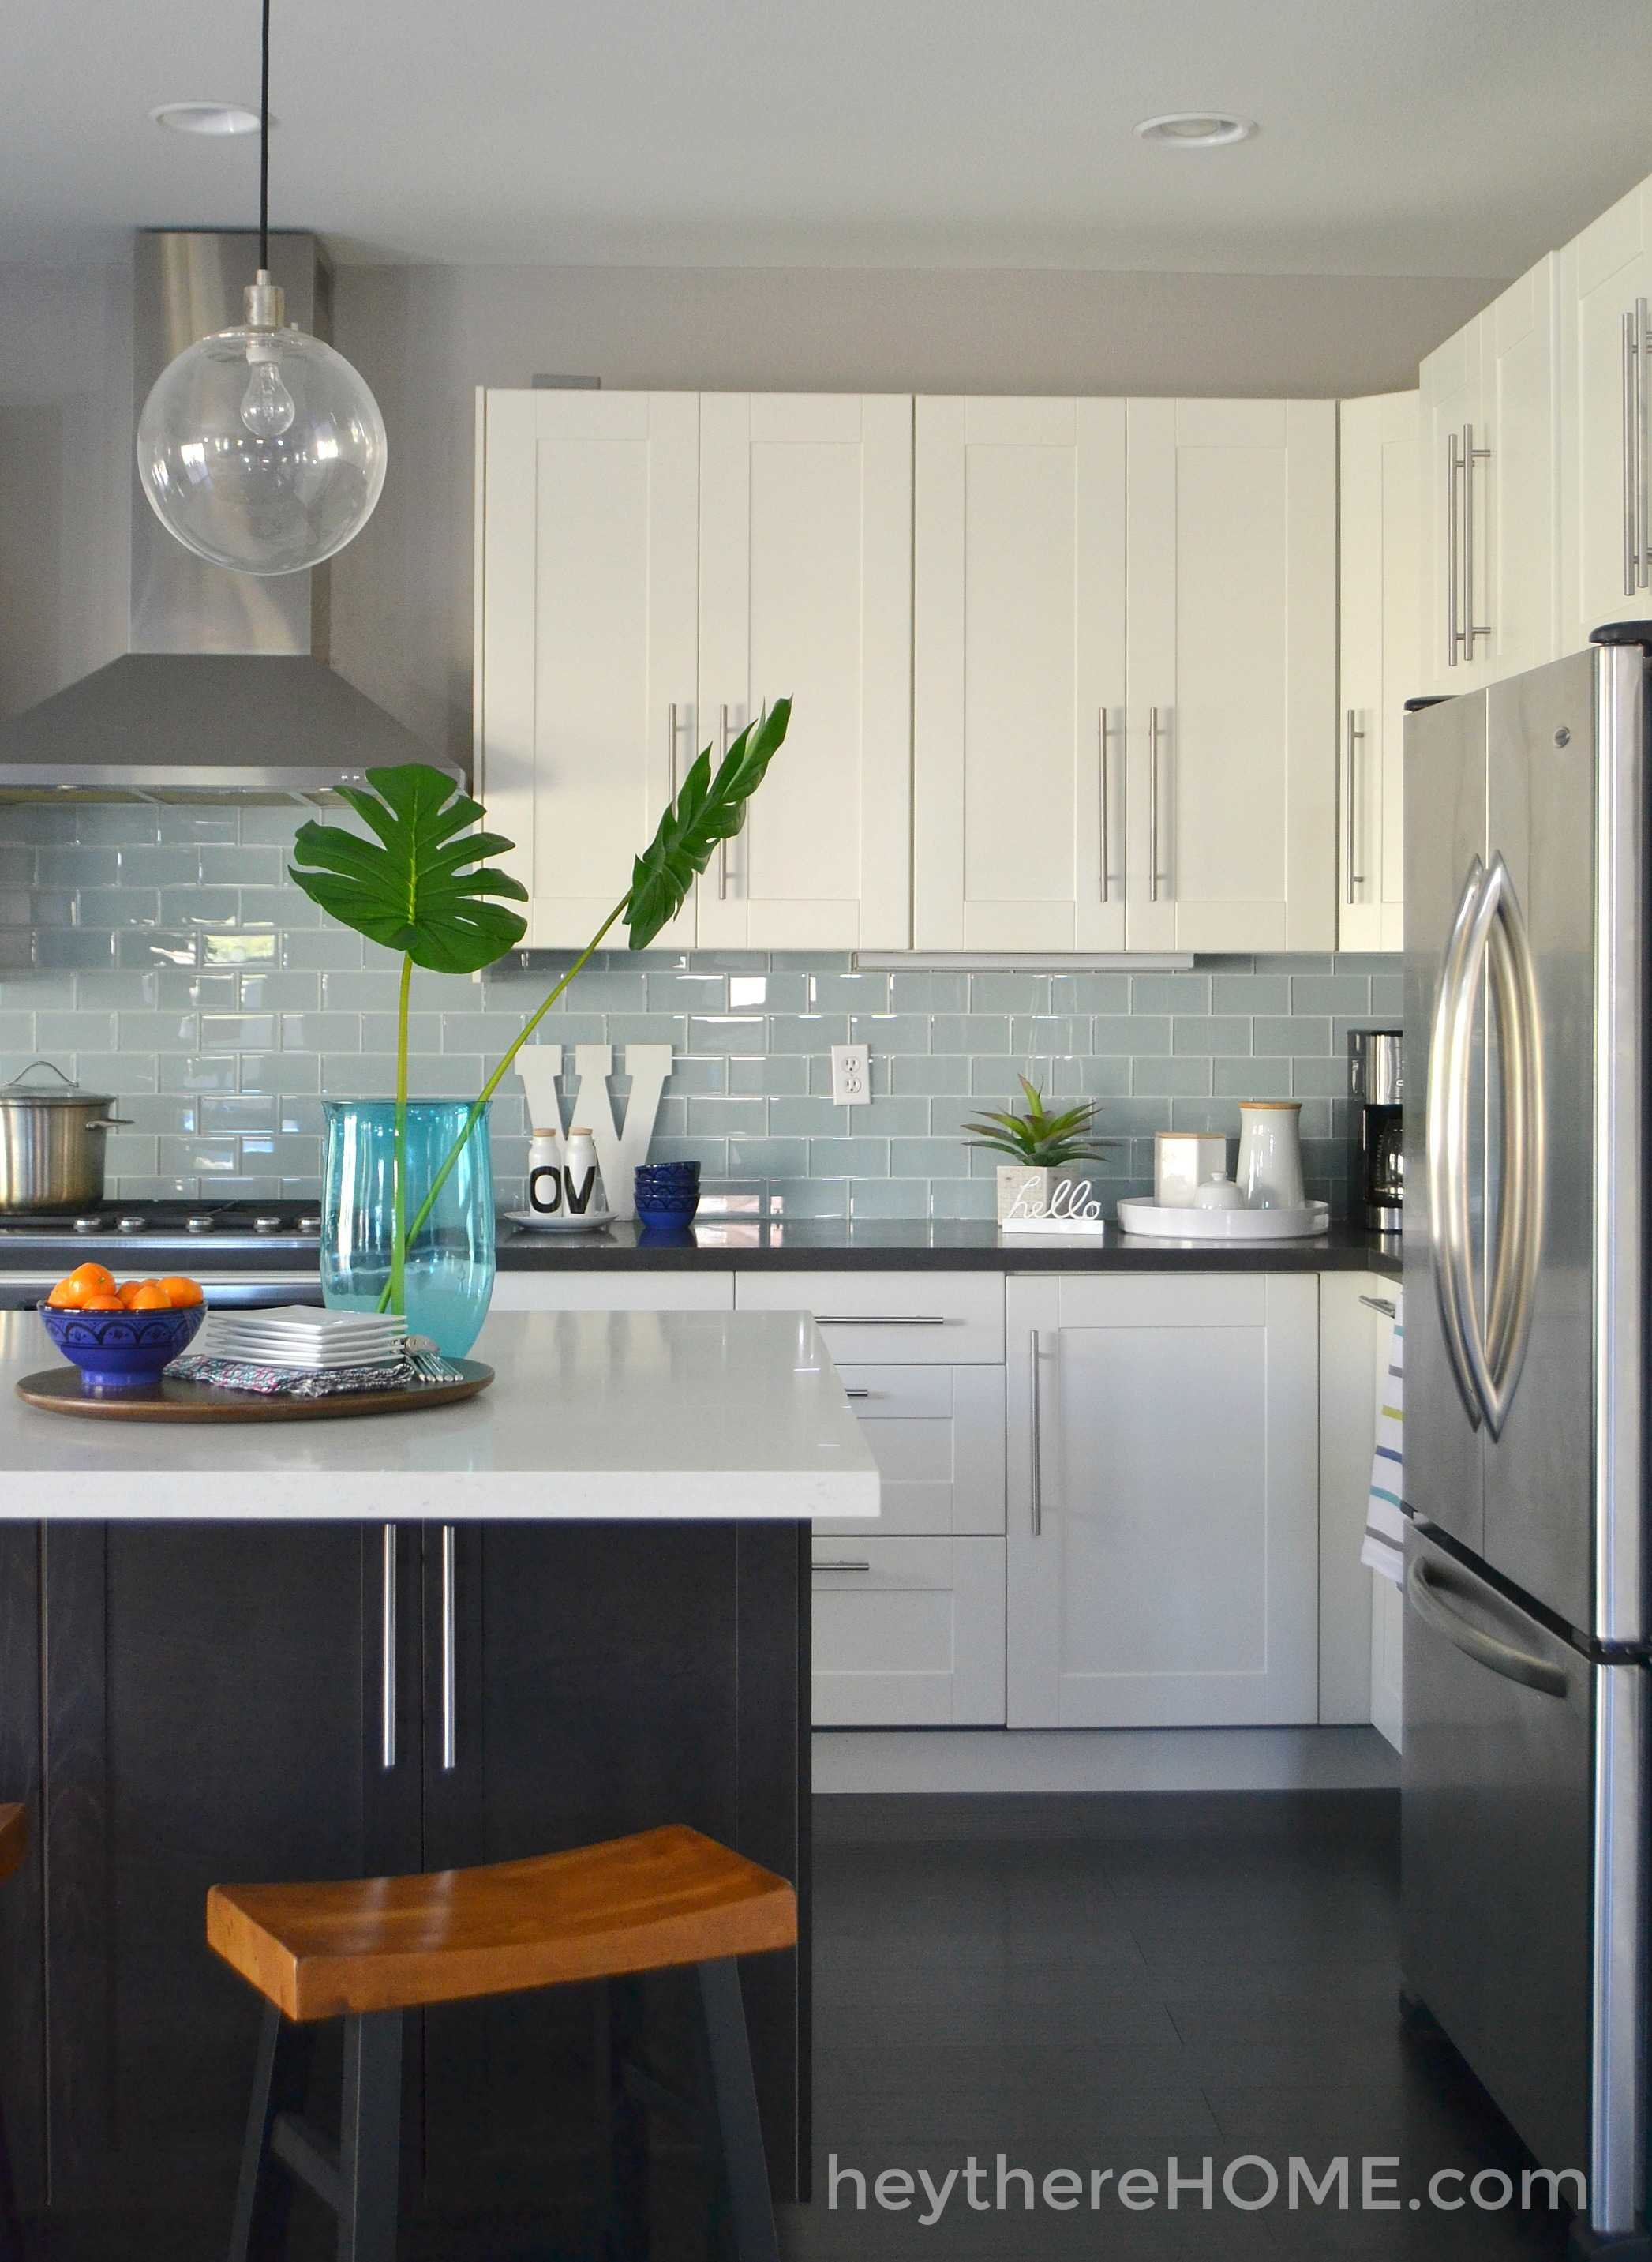 white kitchen cabinets ikea kitchen remodel ideas that add value to your home 1354